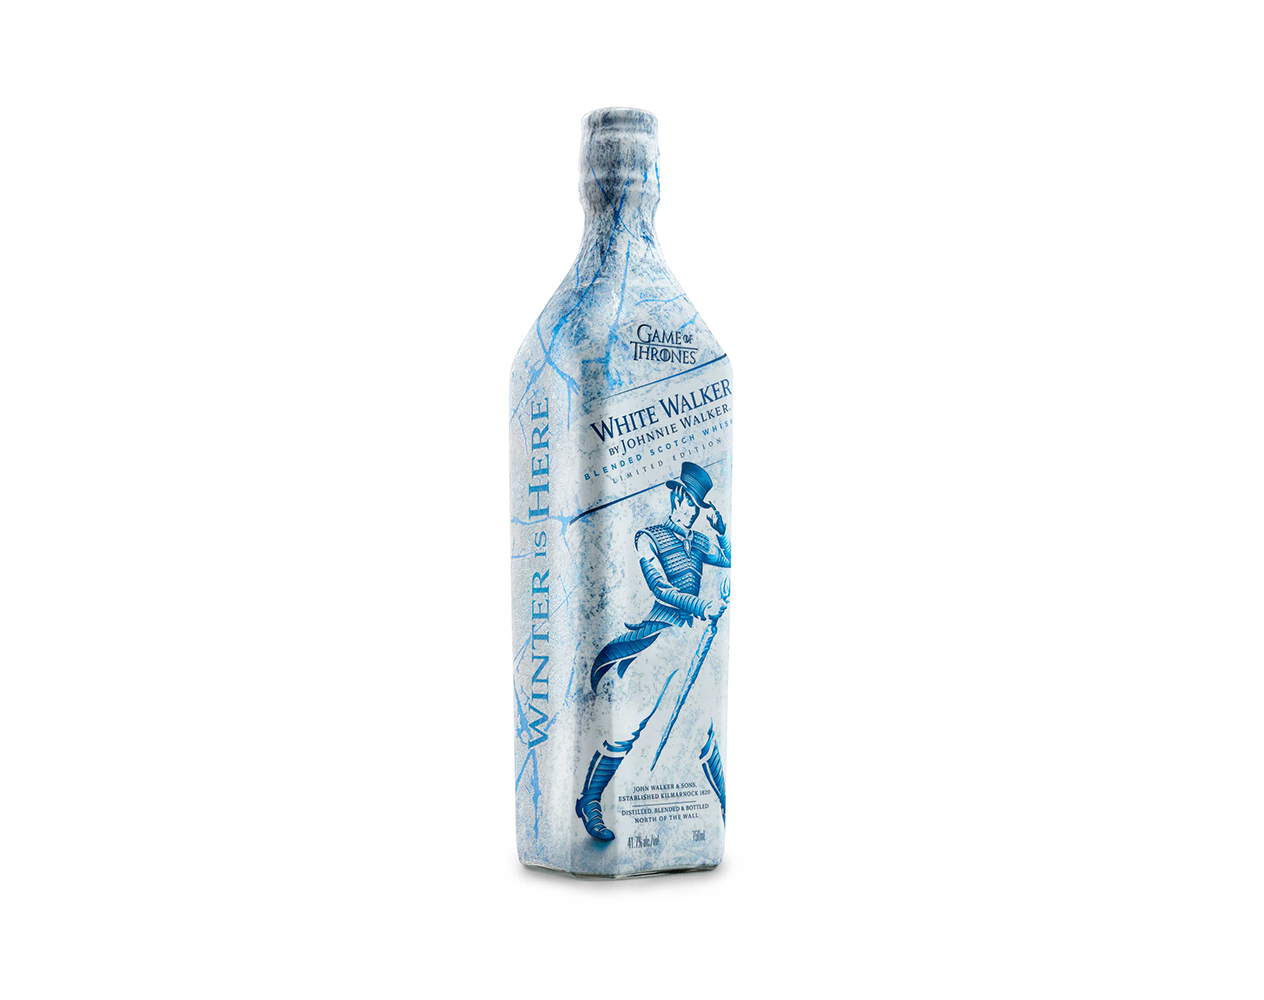 Introducing Game of Thrones inspired White Walker by Johnnie Walker Whisky in celebration of the eighth and final season.